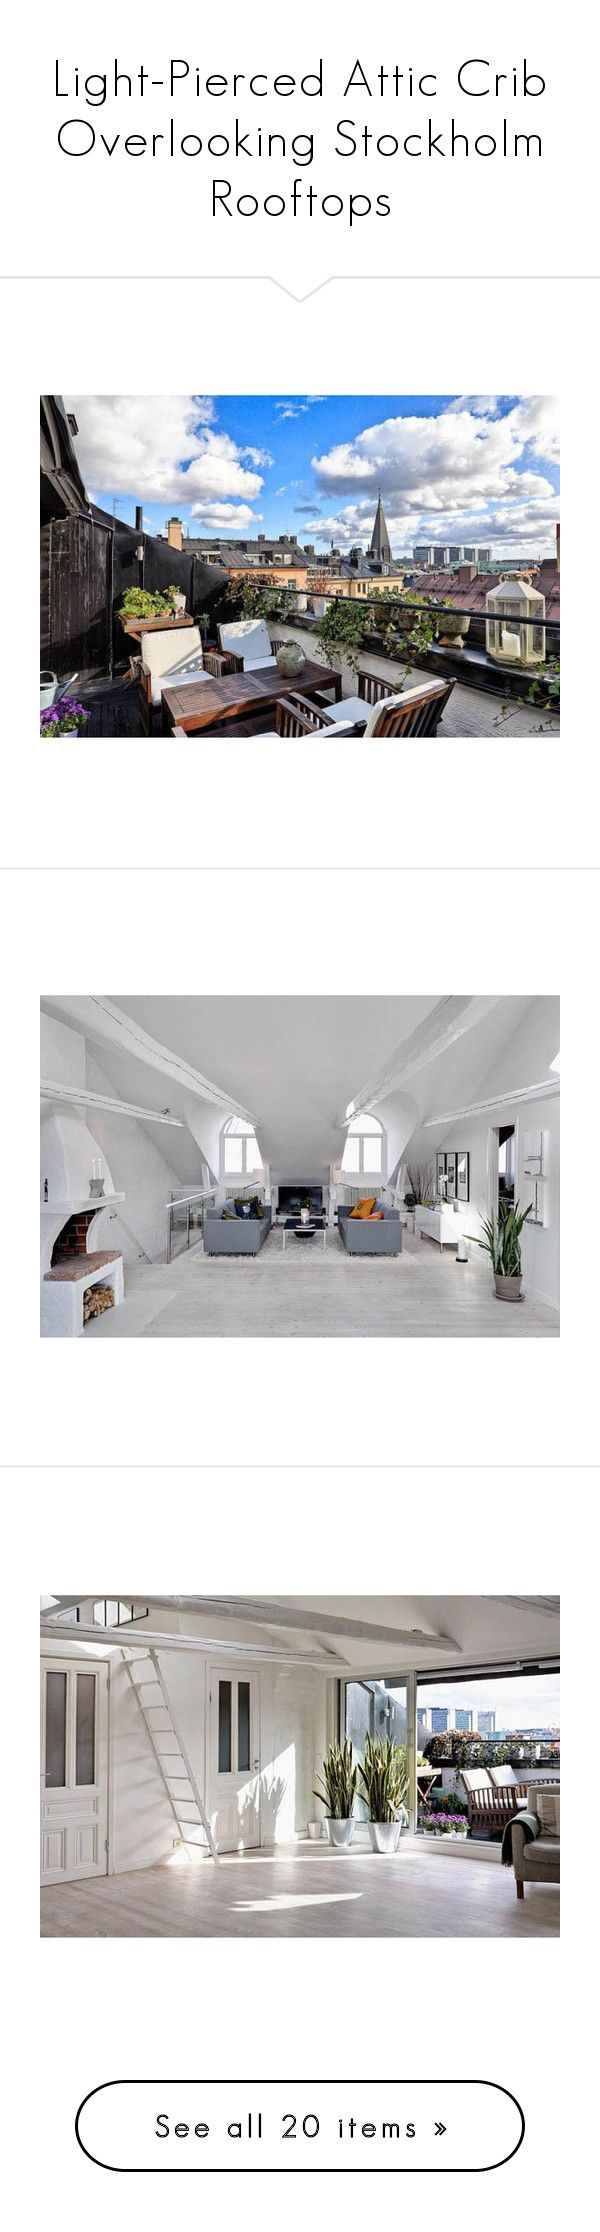 Light-Pierced Attic Crib Overlooking Stockholm Rooftops\